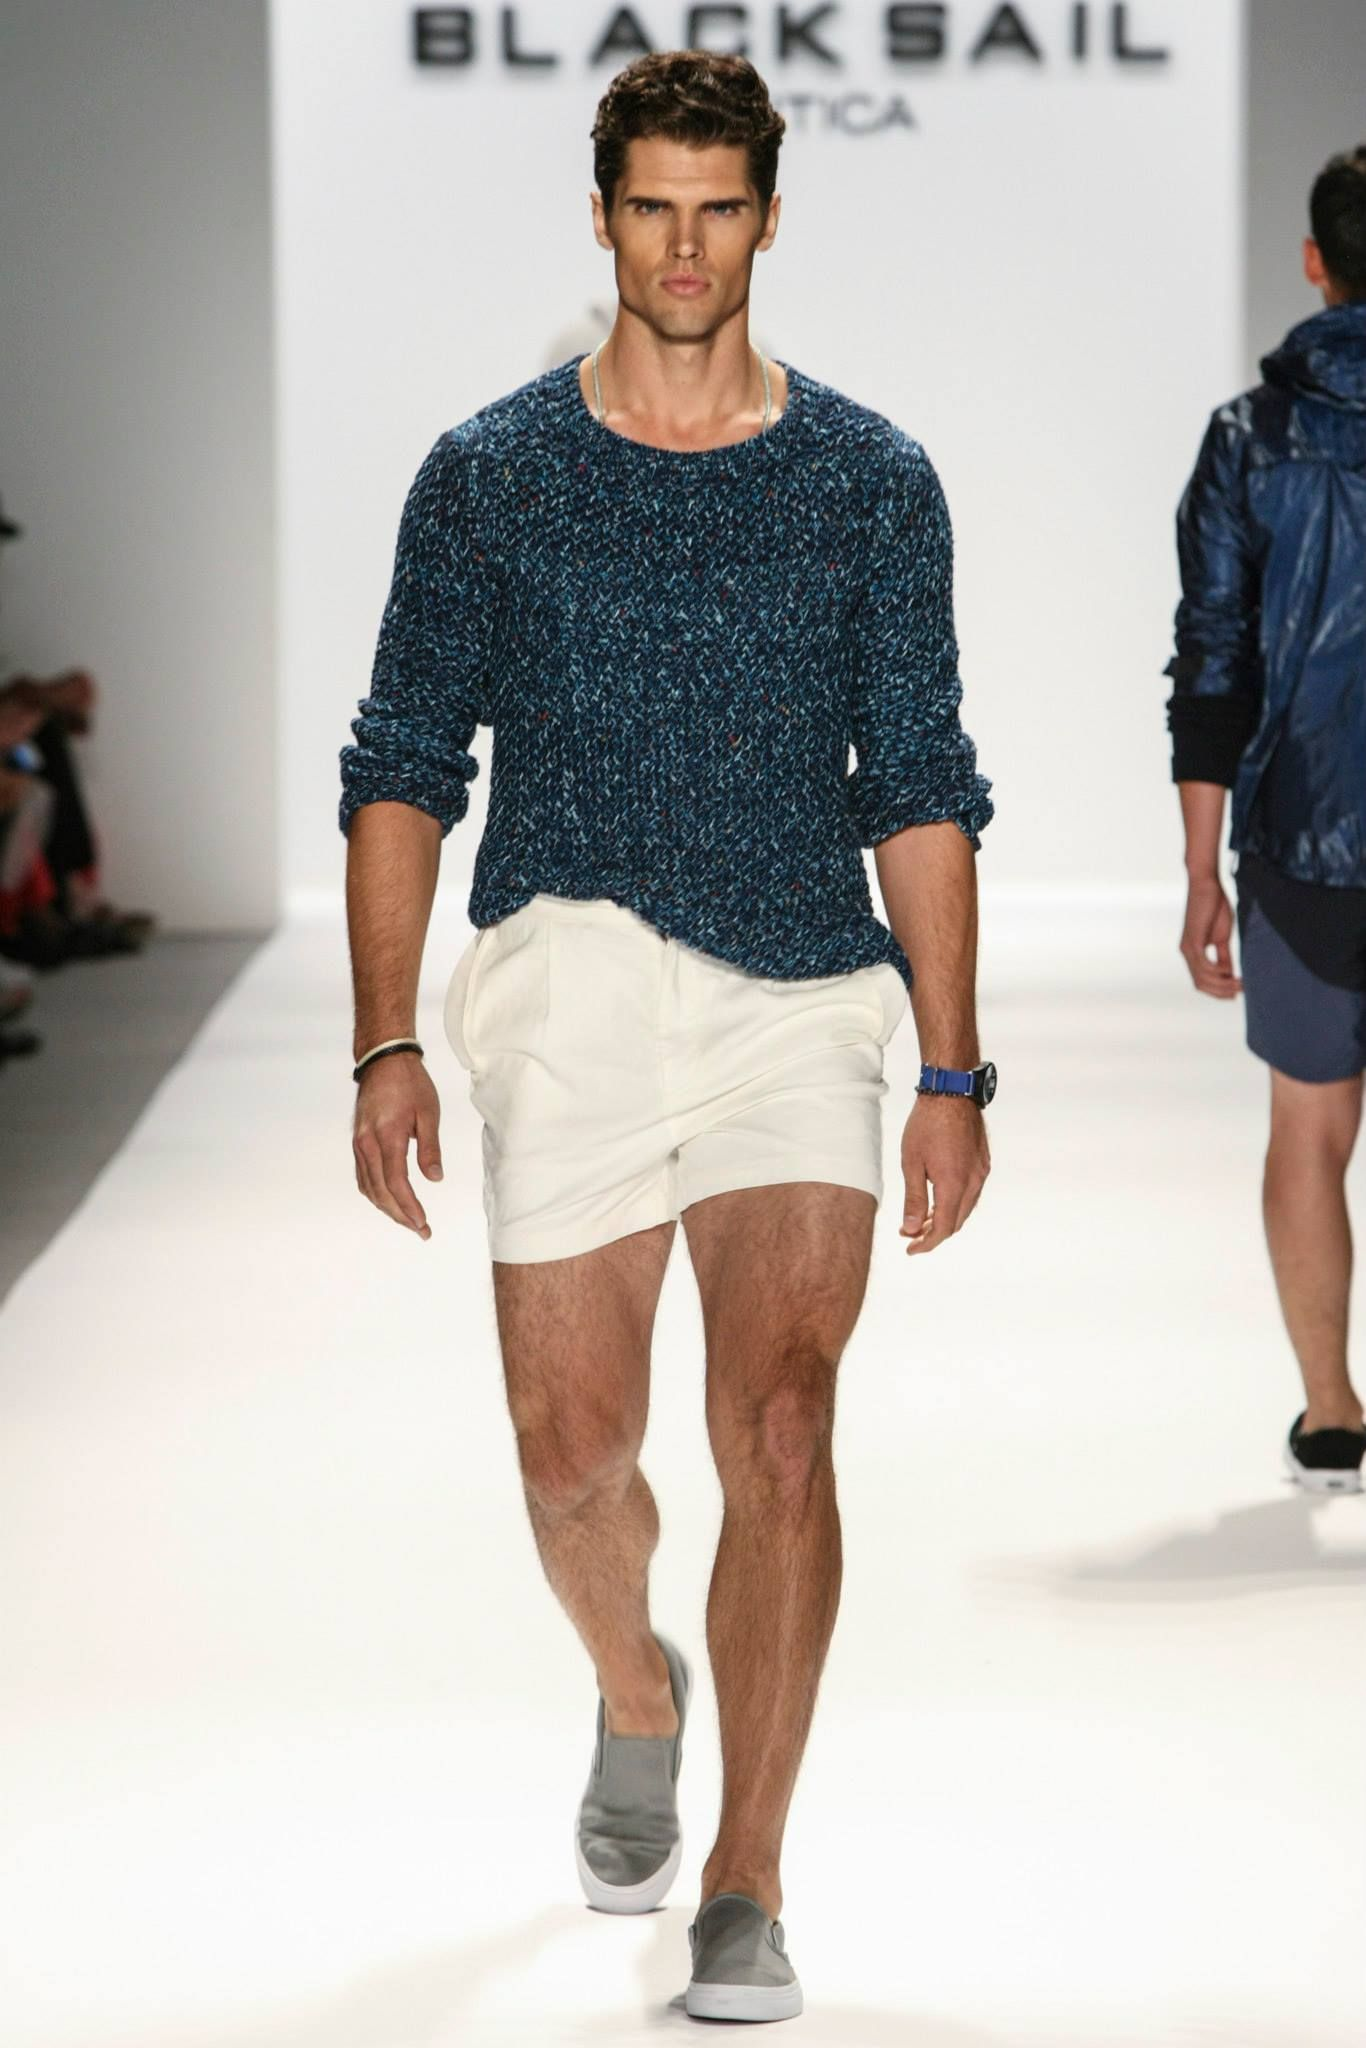 Nautica Men 39 S Spring 2014 Black Sail Fashion Show